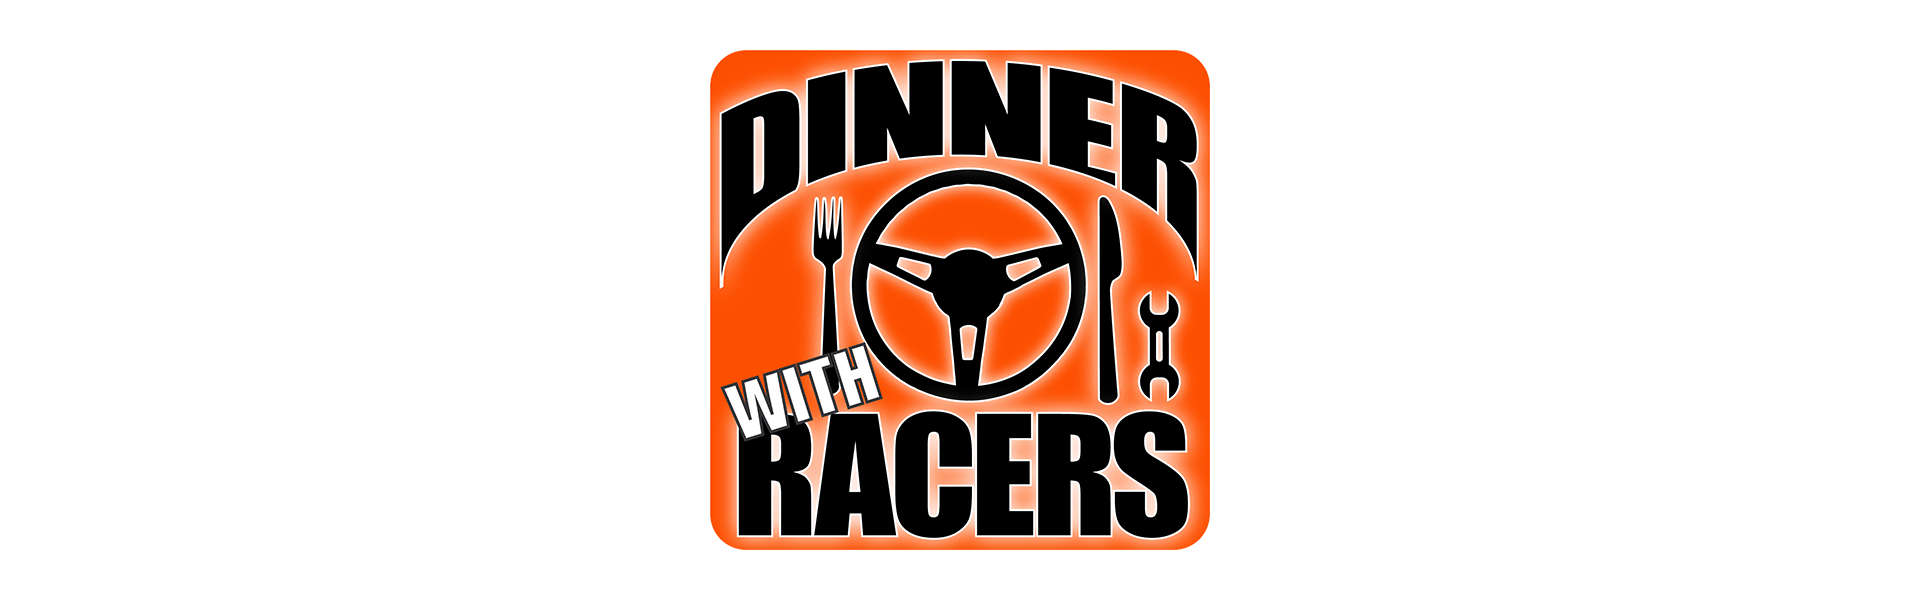 02_Dinner with Racers logo copy